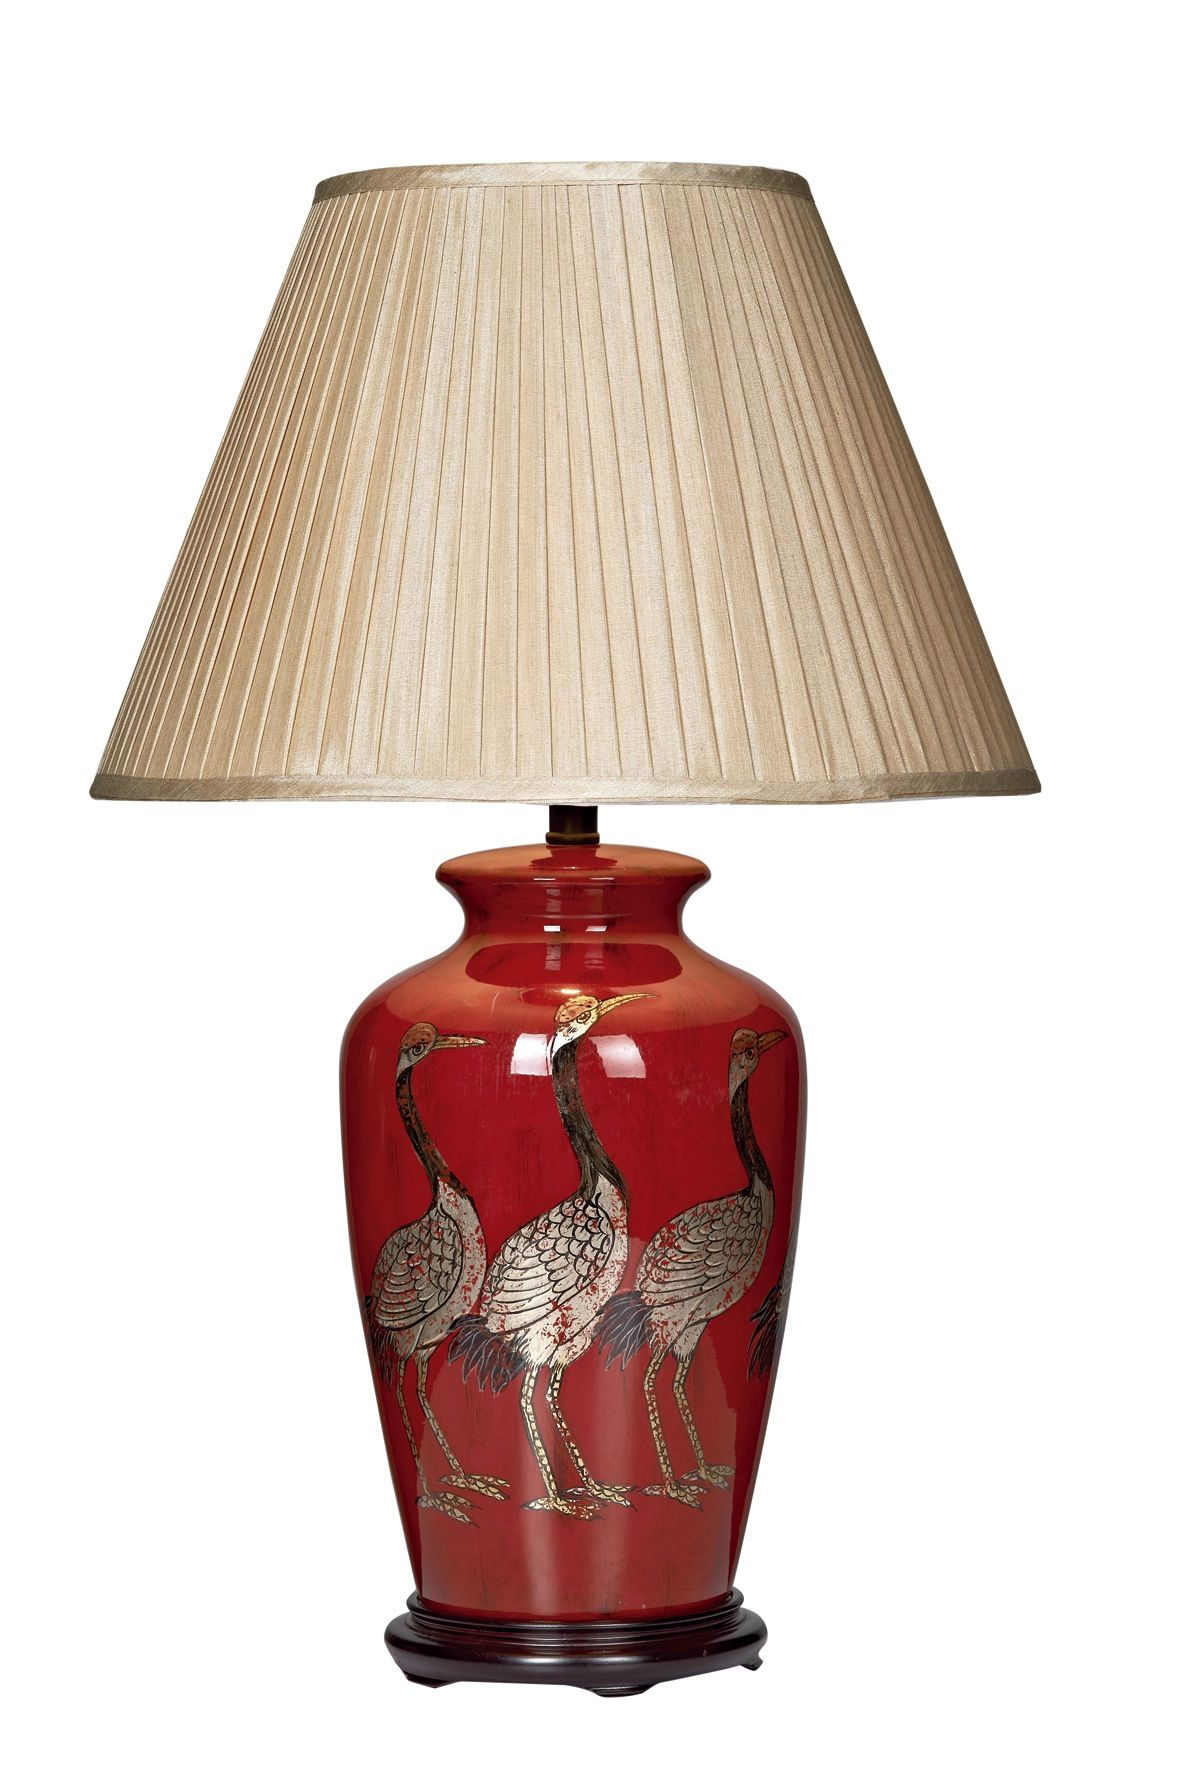 Deep Red Ceramic Glazed Base With Repeating Bird Pattern